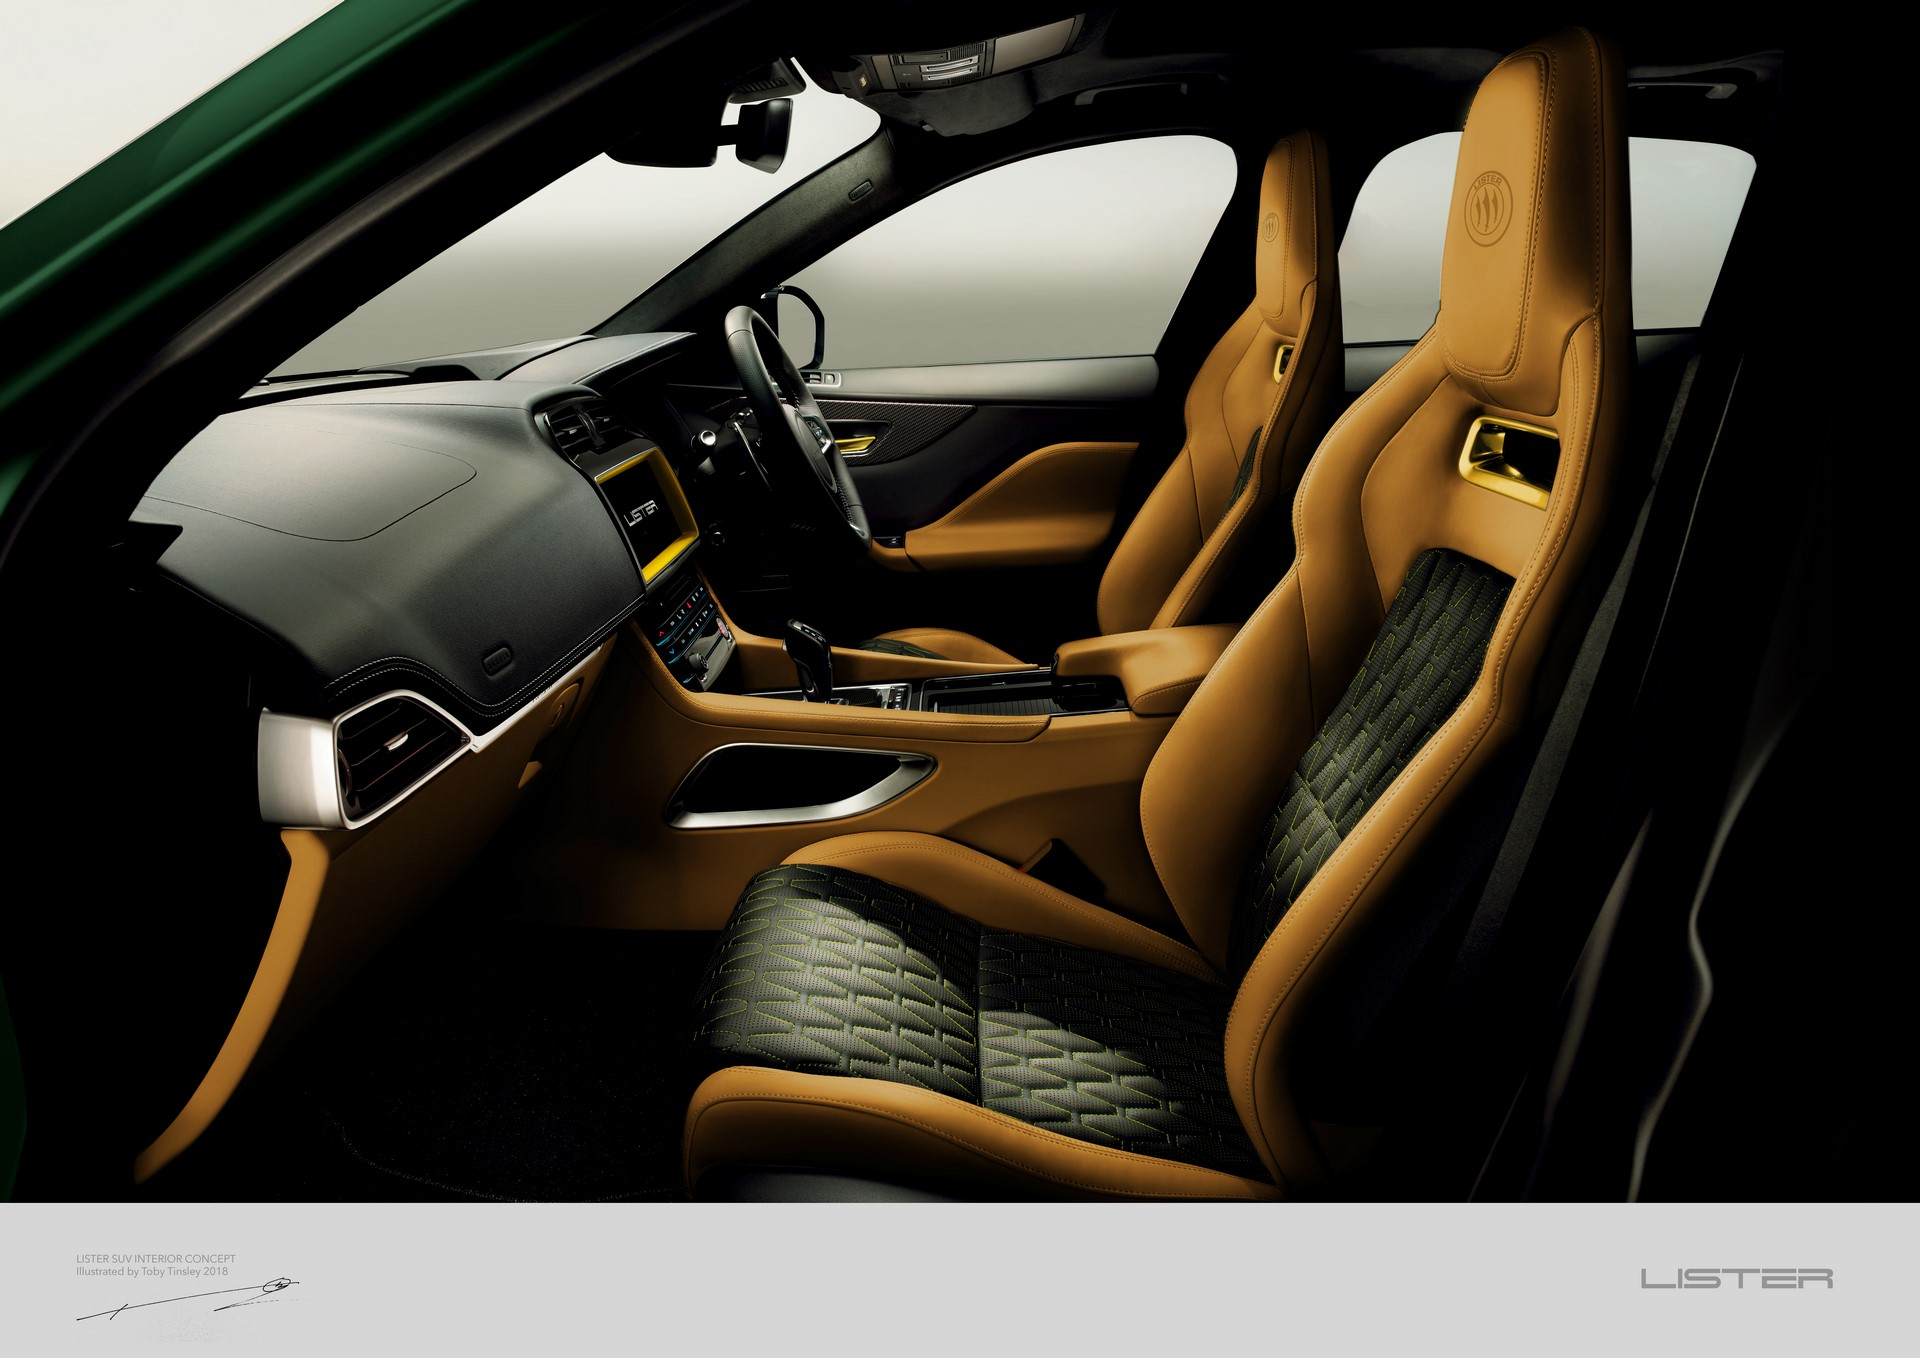 LISTER Interior A3 Front